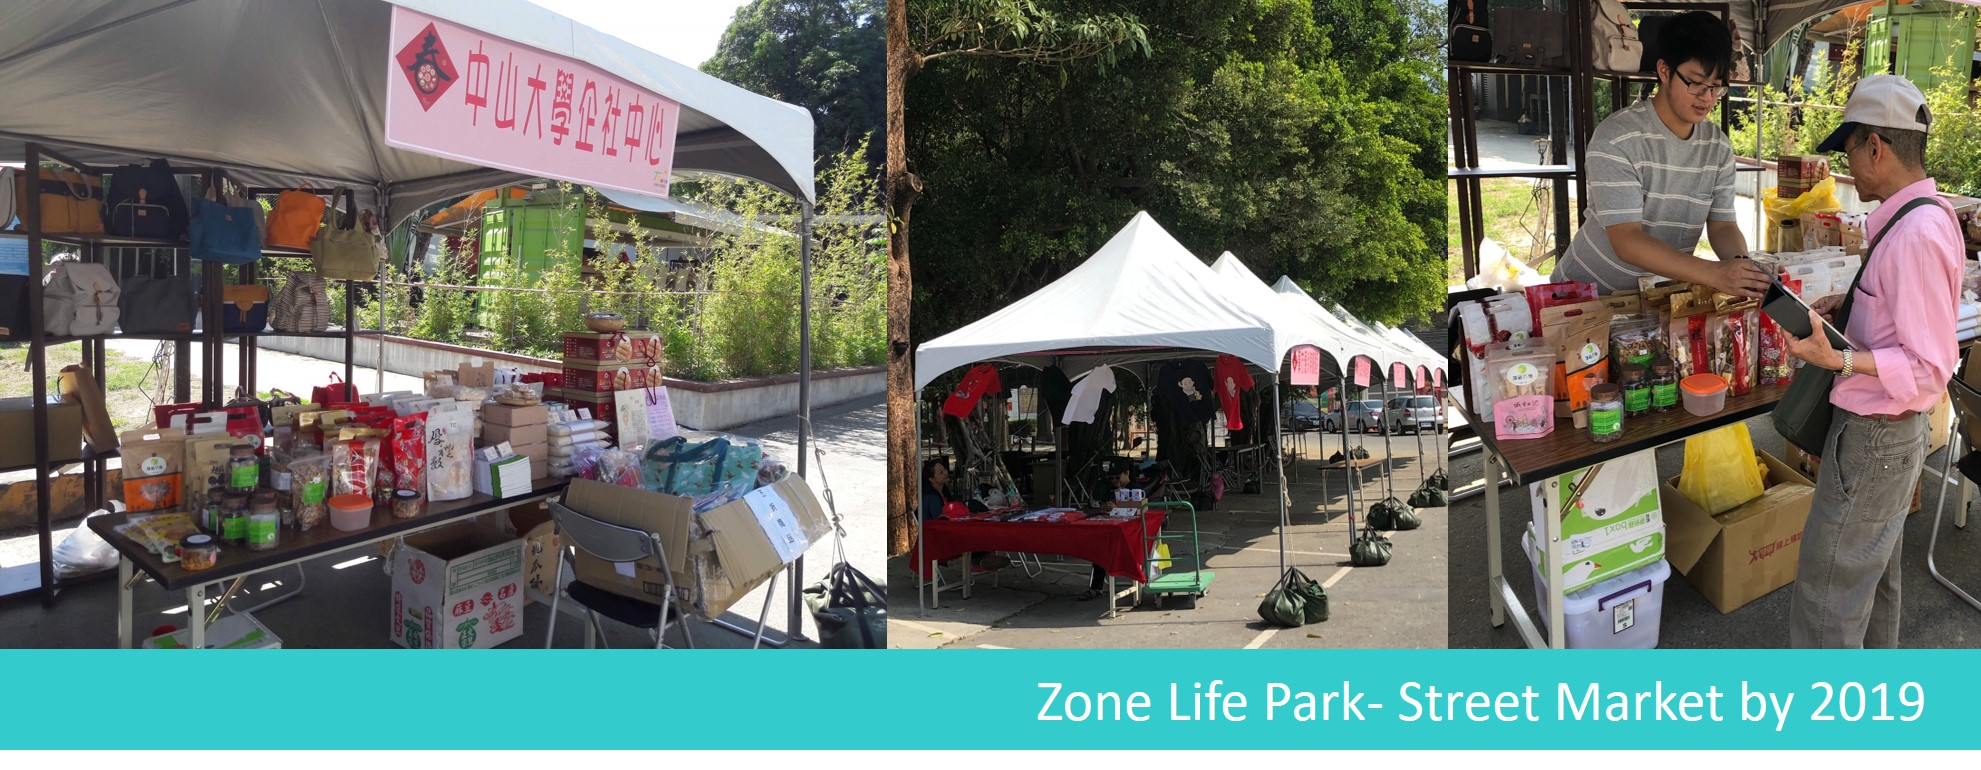 Zone Life Park- Street Market by 2019